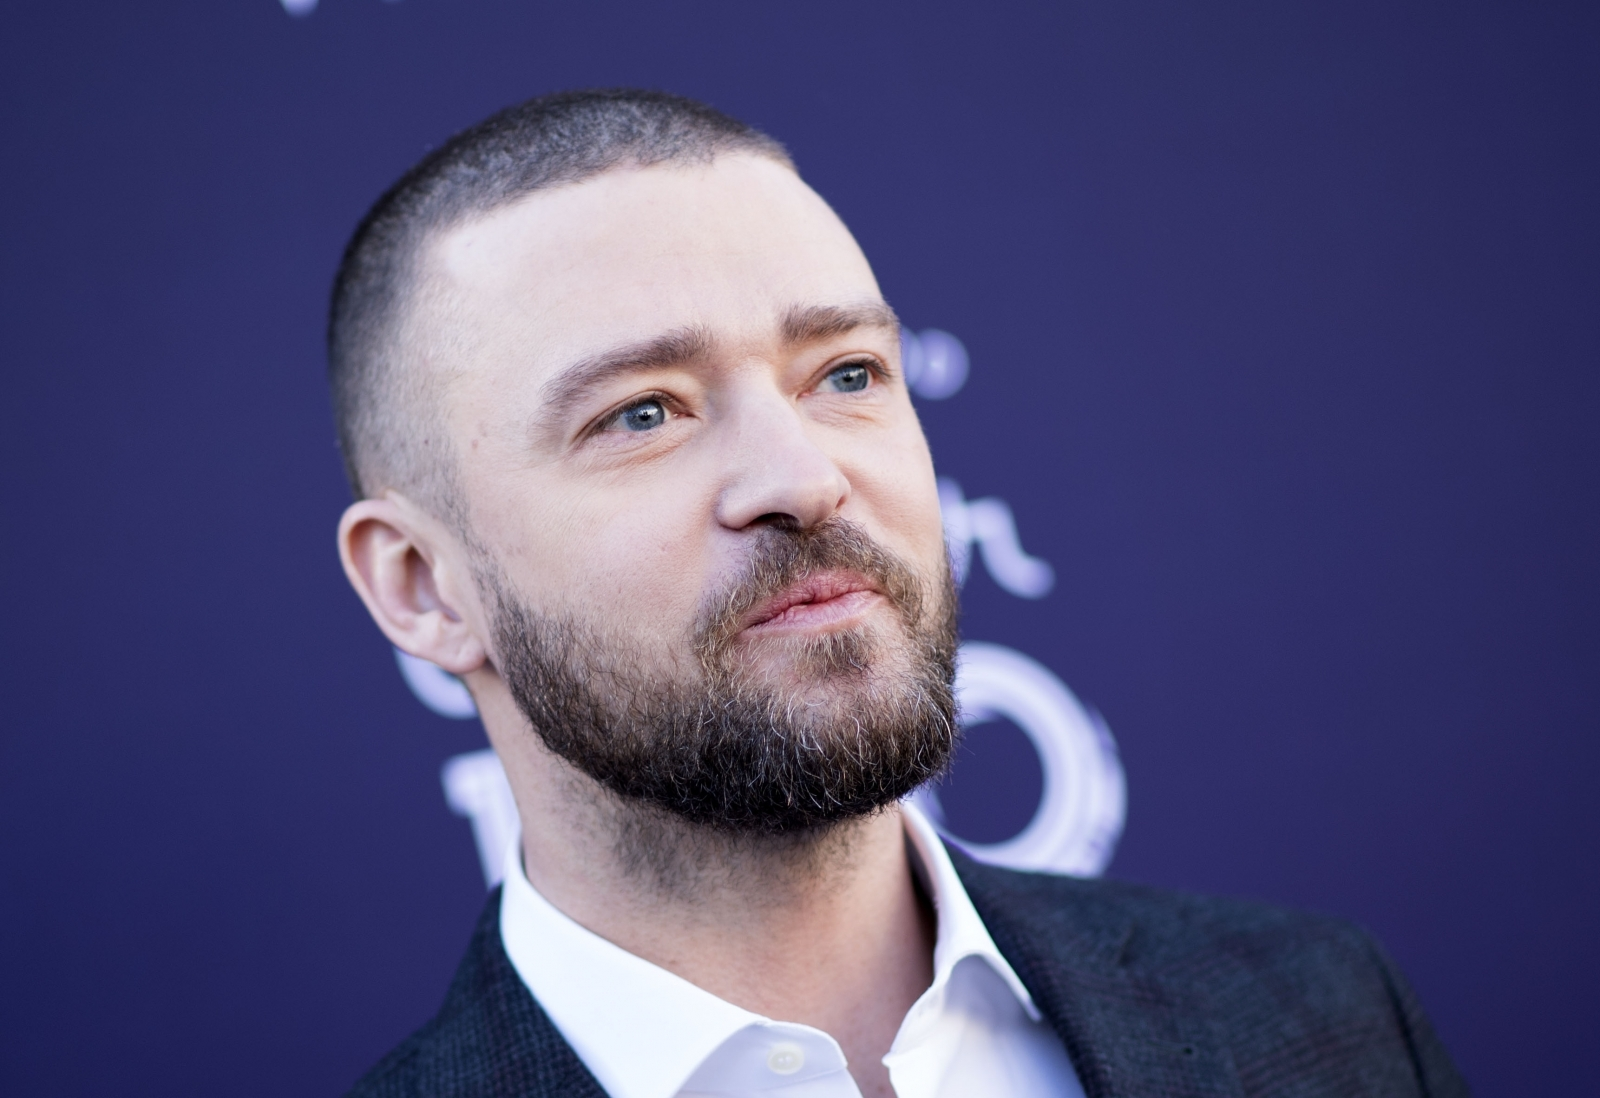 Justin Timberlake Super Bowl Performance Criticized by Prince Fans